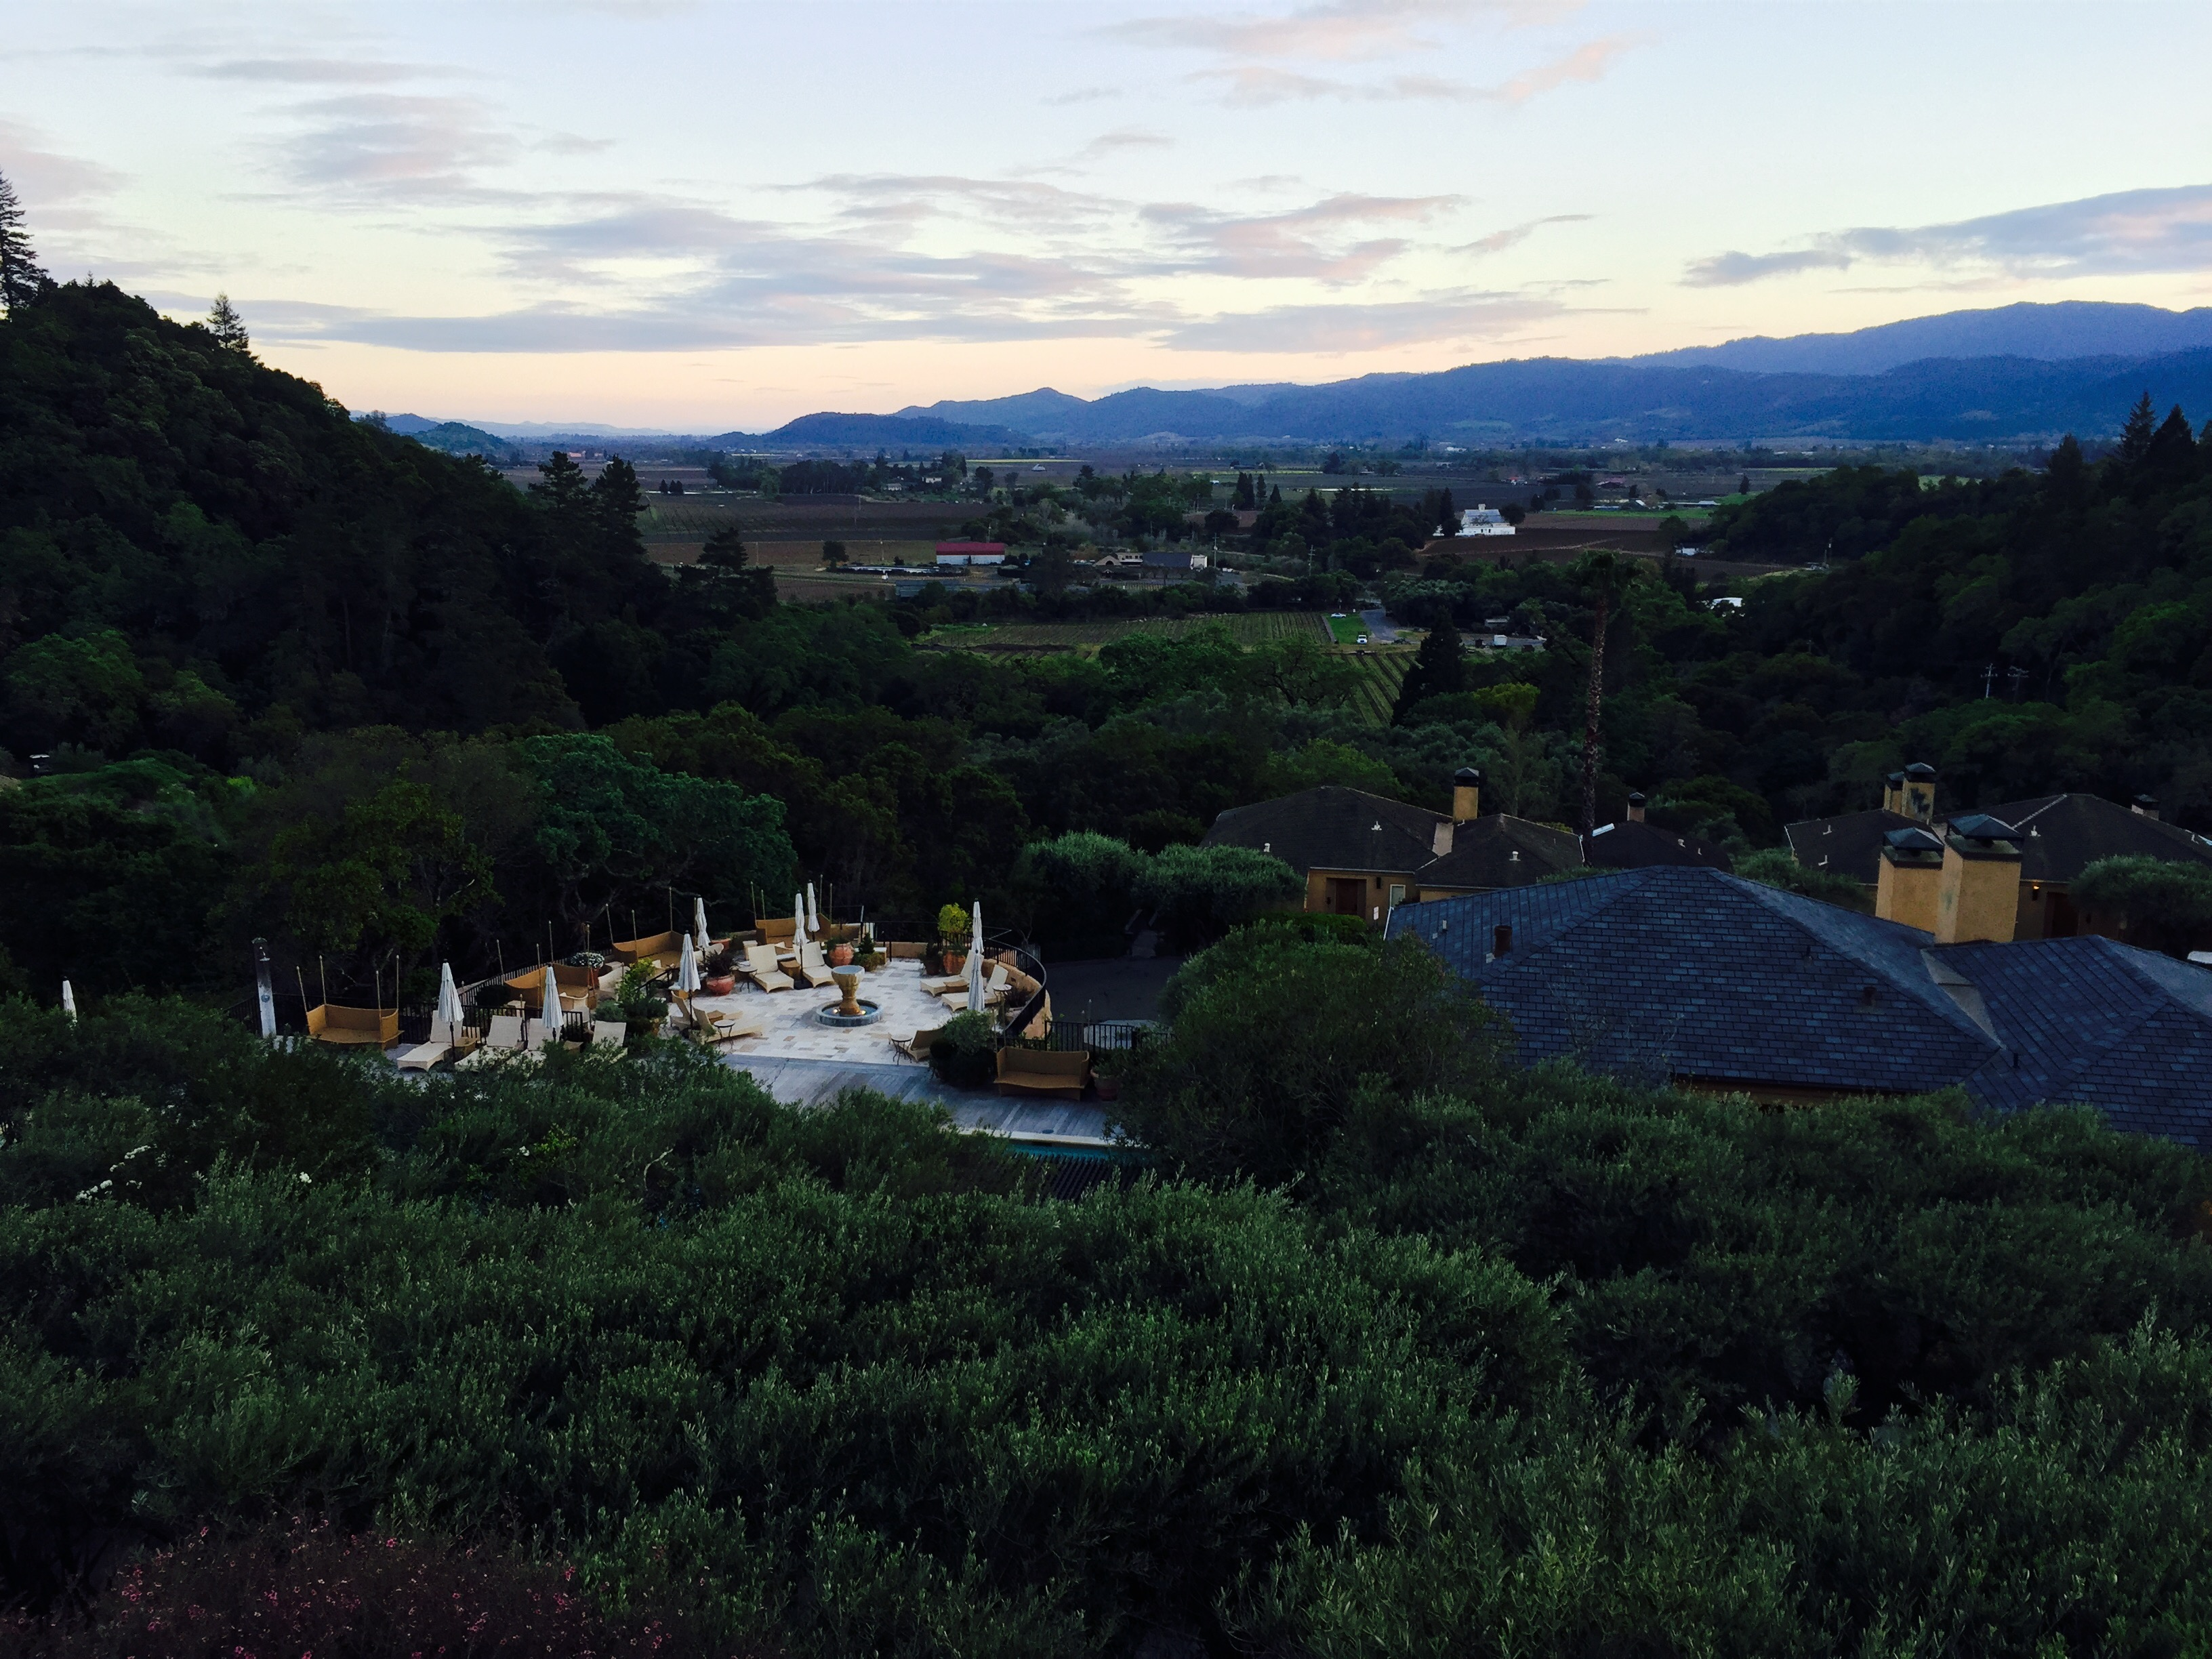 ManAboutWorld gay travel magazine visited Napa Valley